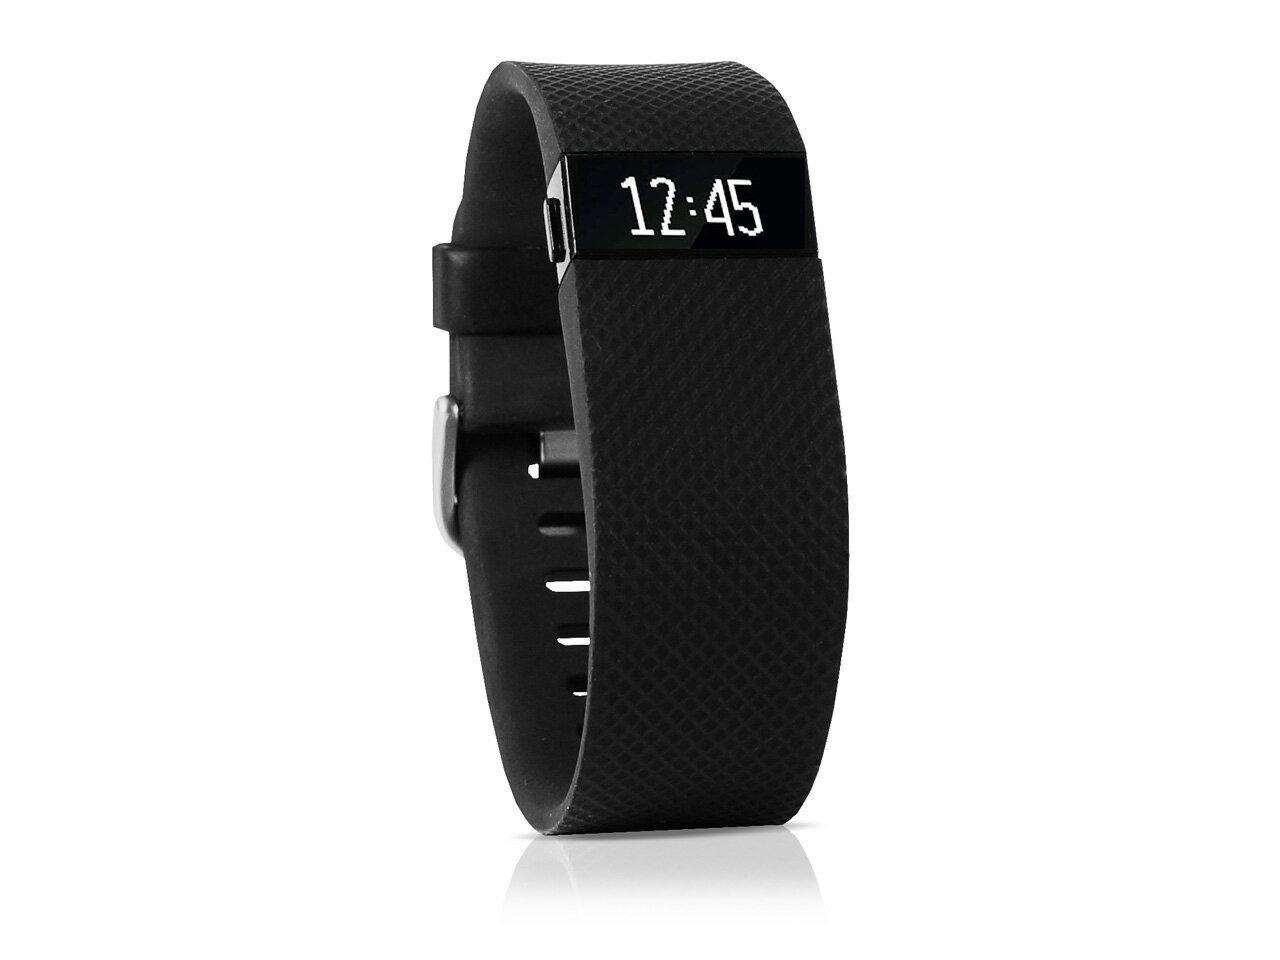 Fitbit Charge HR Heart Rate & Activity Fitness Monitor Wristband - Black - Small 0